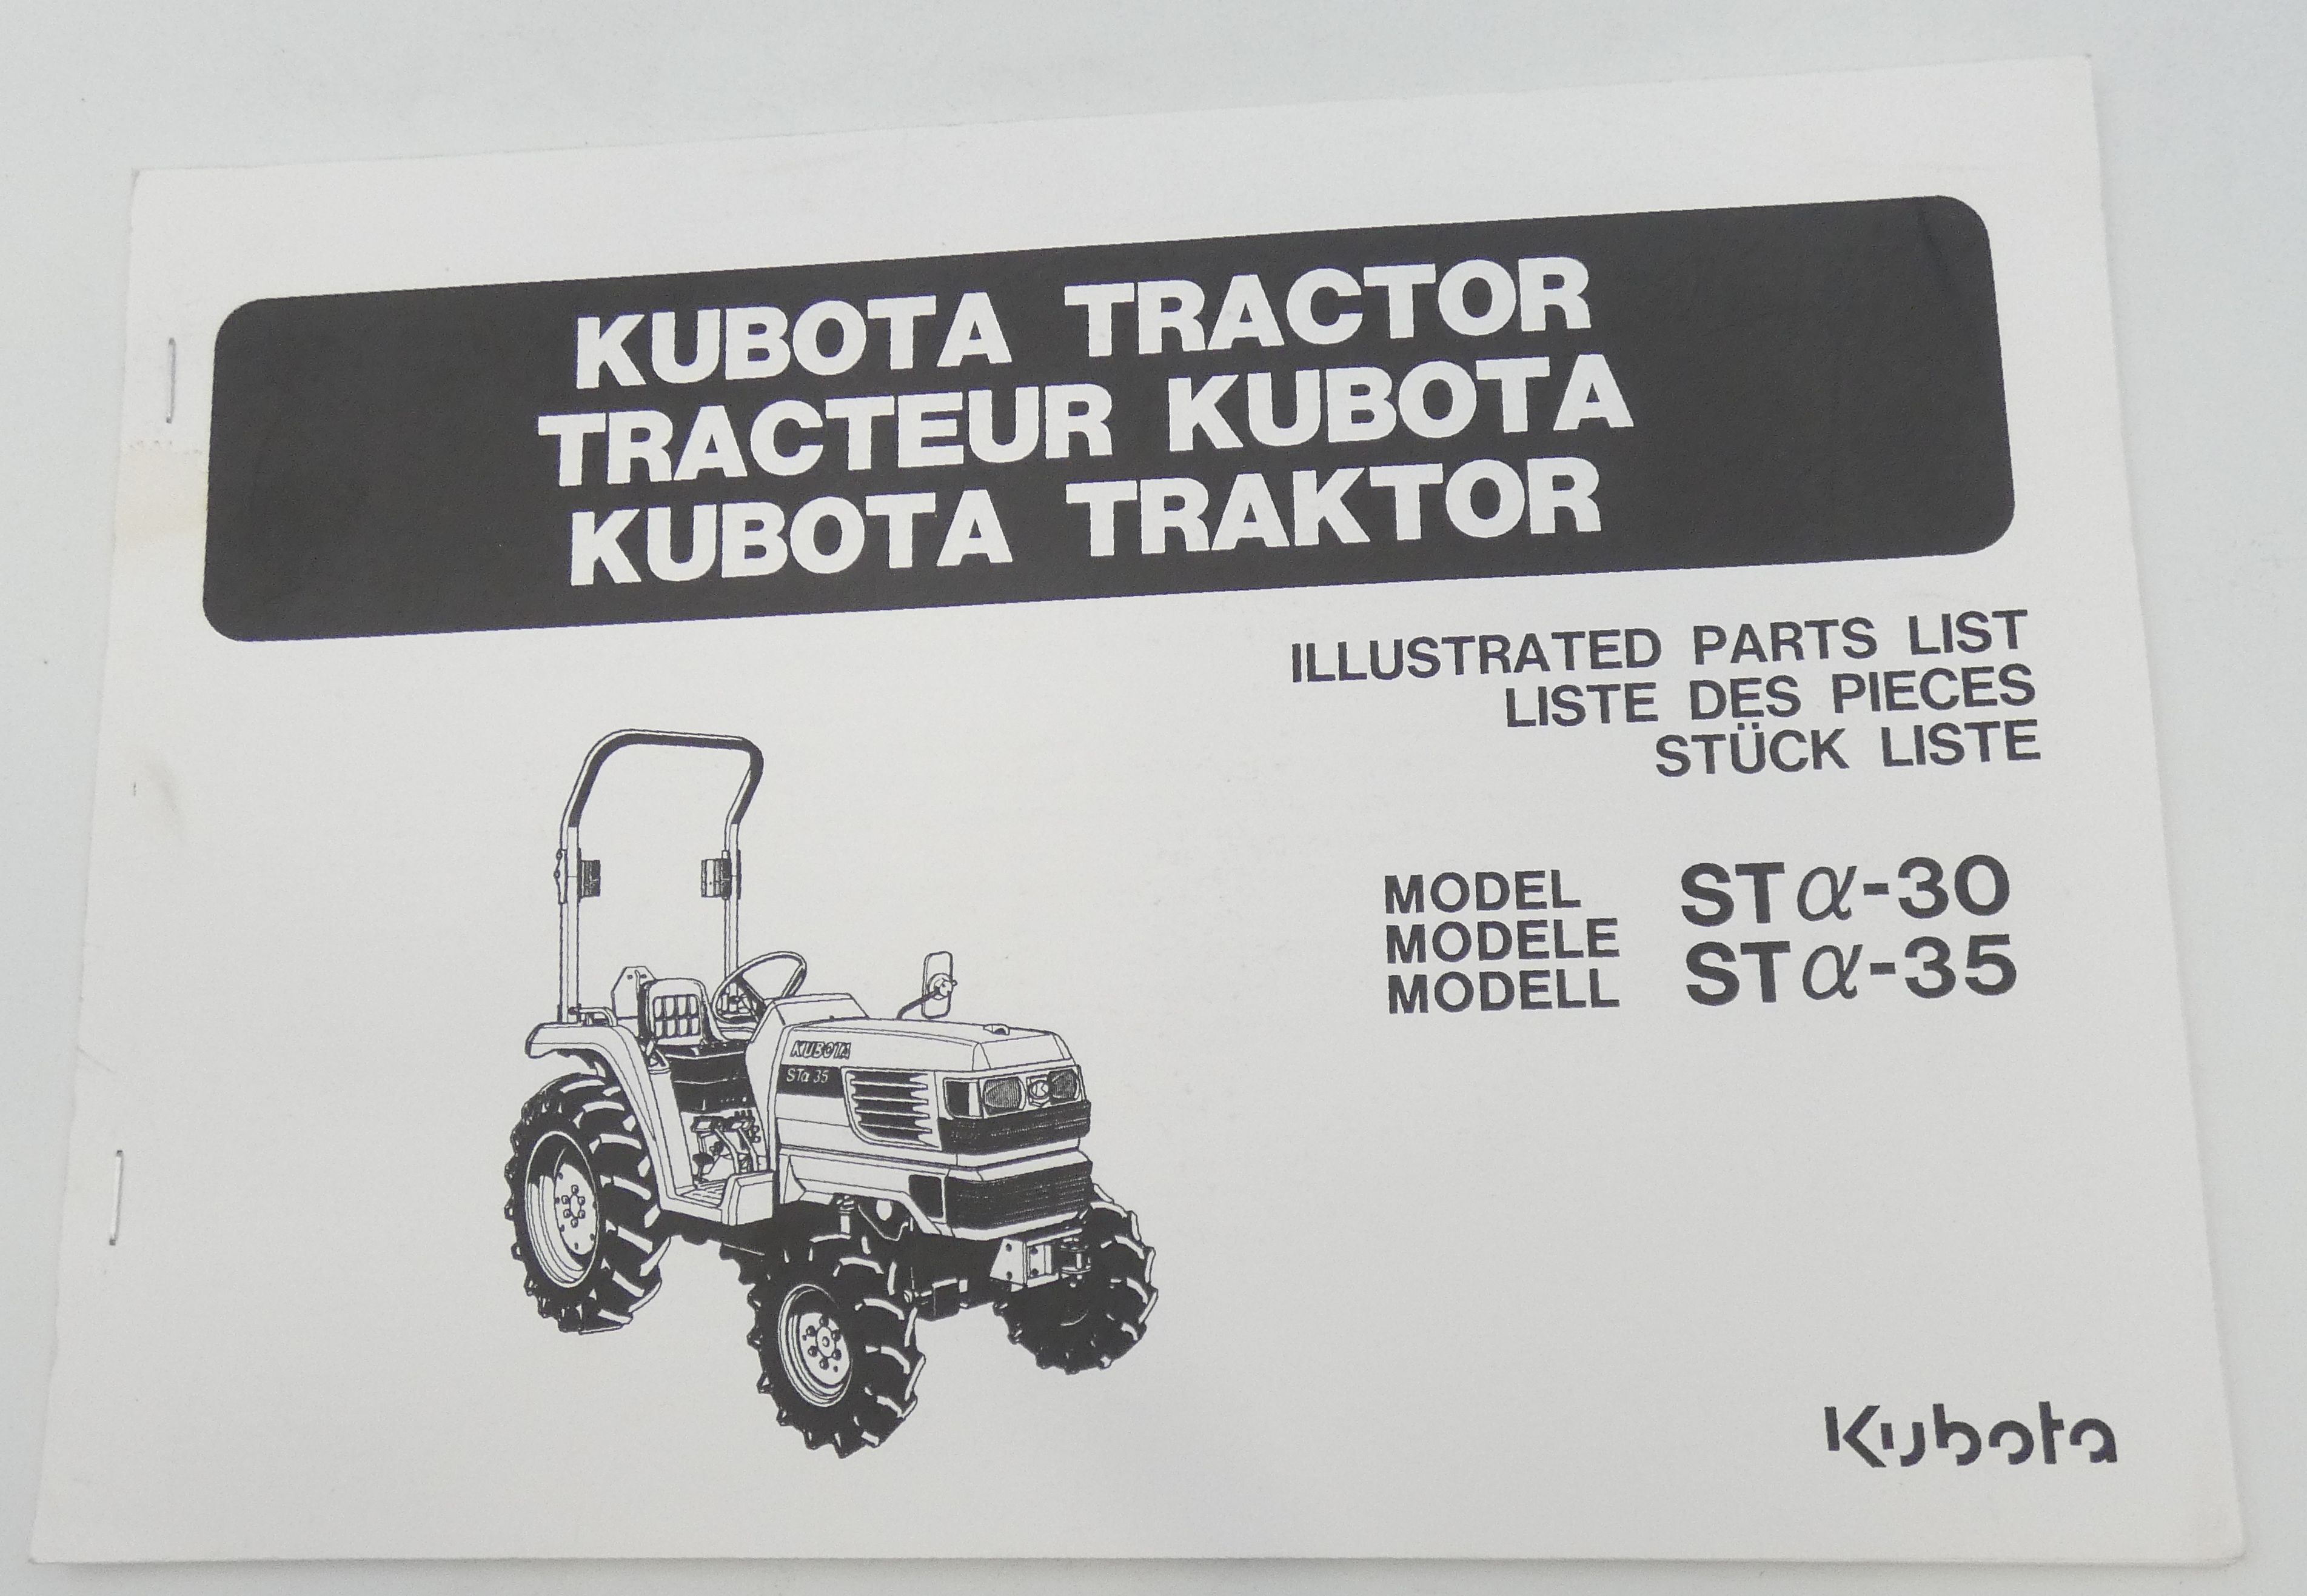 Kubota tractor models STa-30, STa-35 illustrated parts list